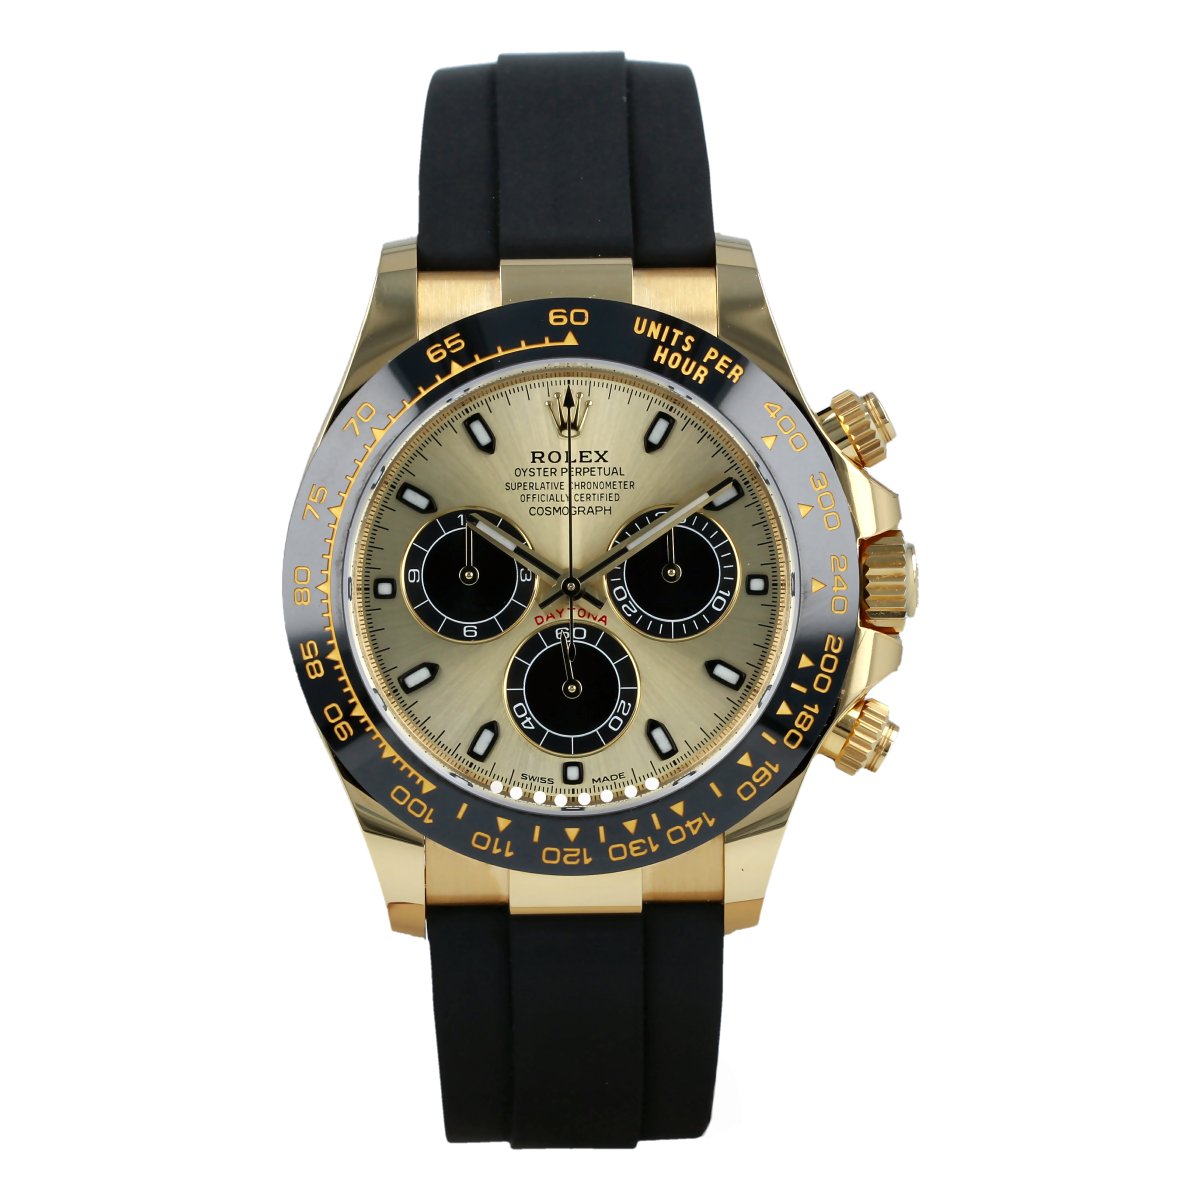 Rolex Cosmograph Daytona 116518LN Yellow Gold Champagne Dial *New with Stickers* | Buy pre-owned Rolex watch